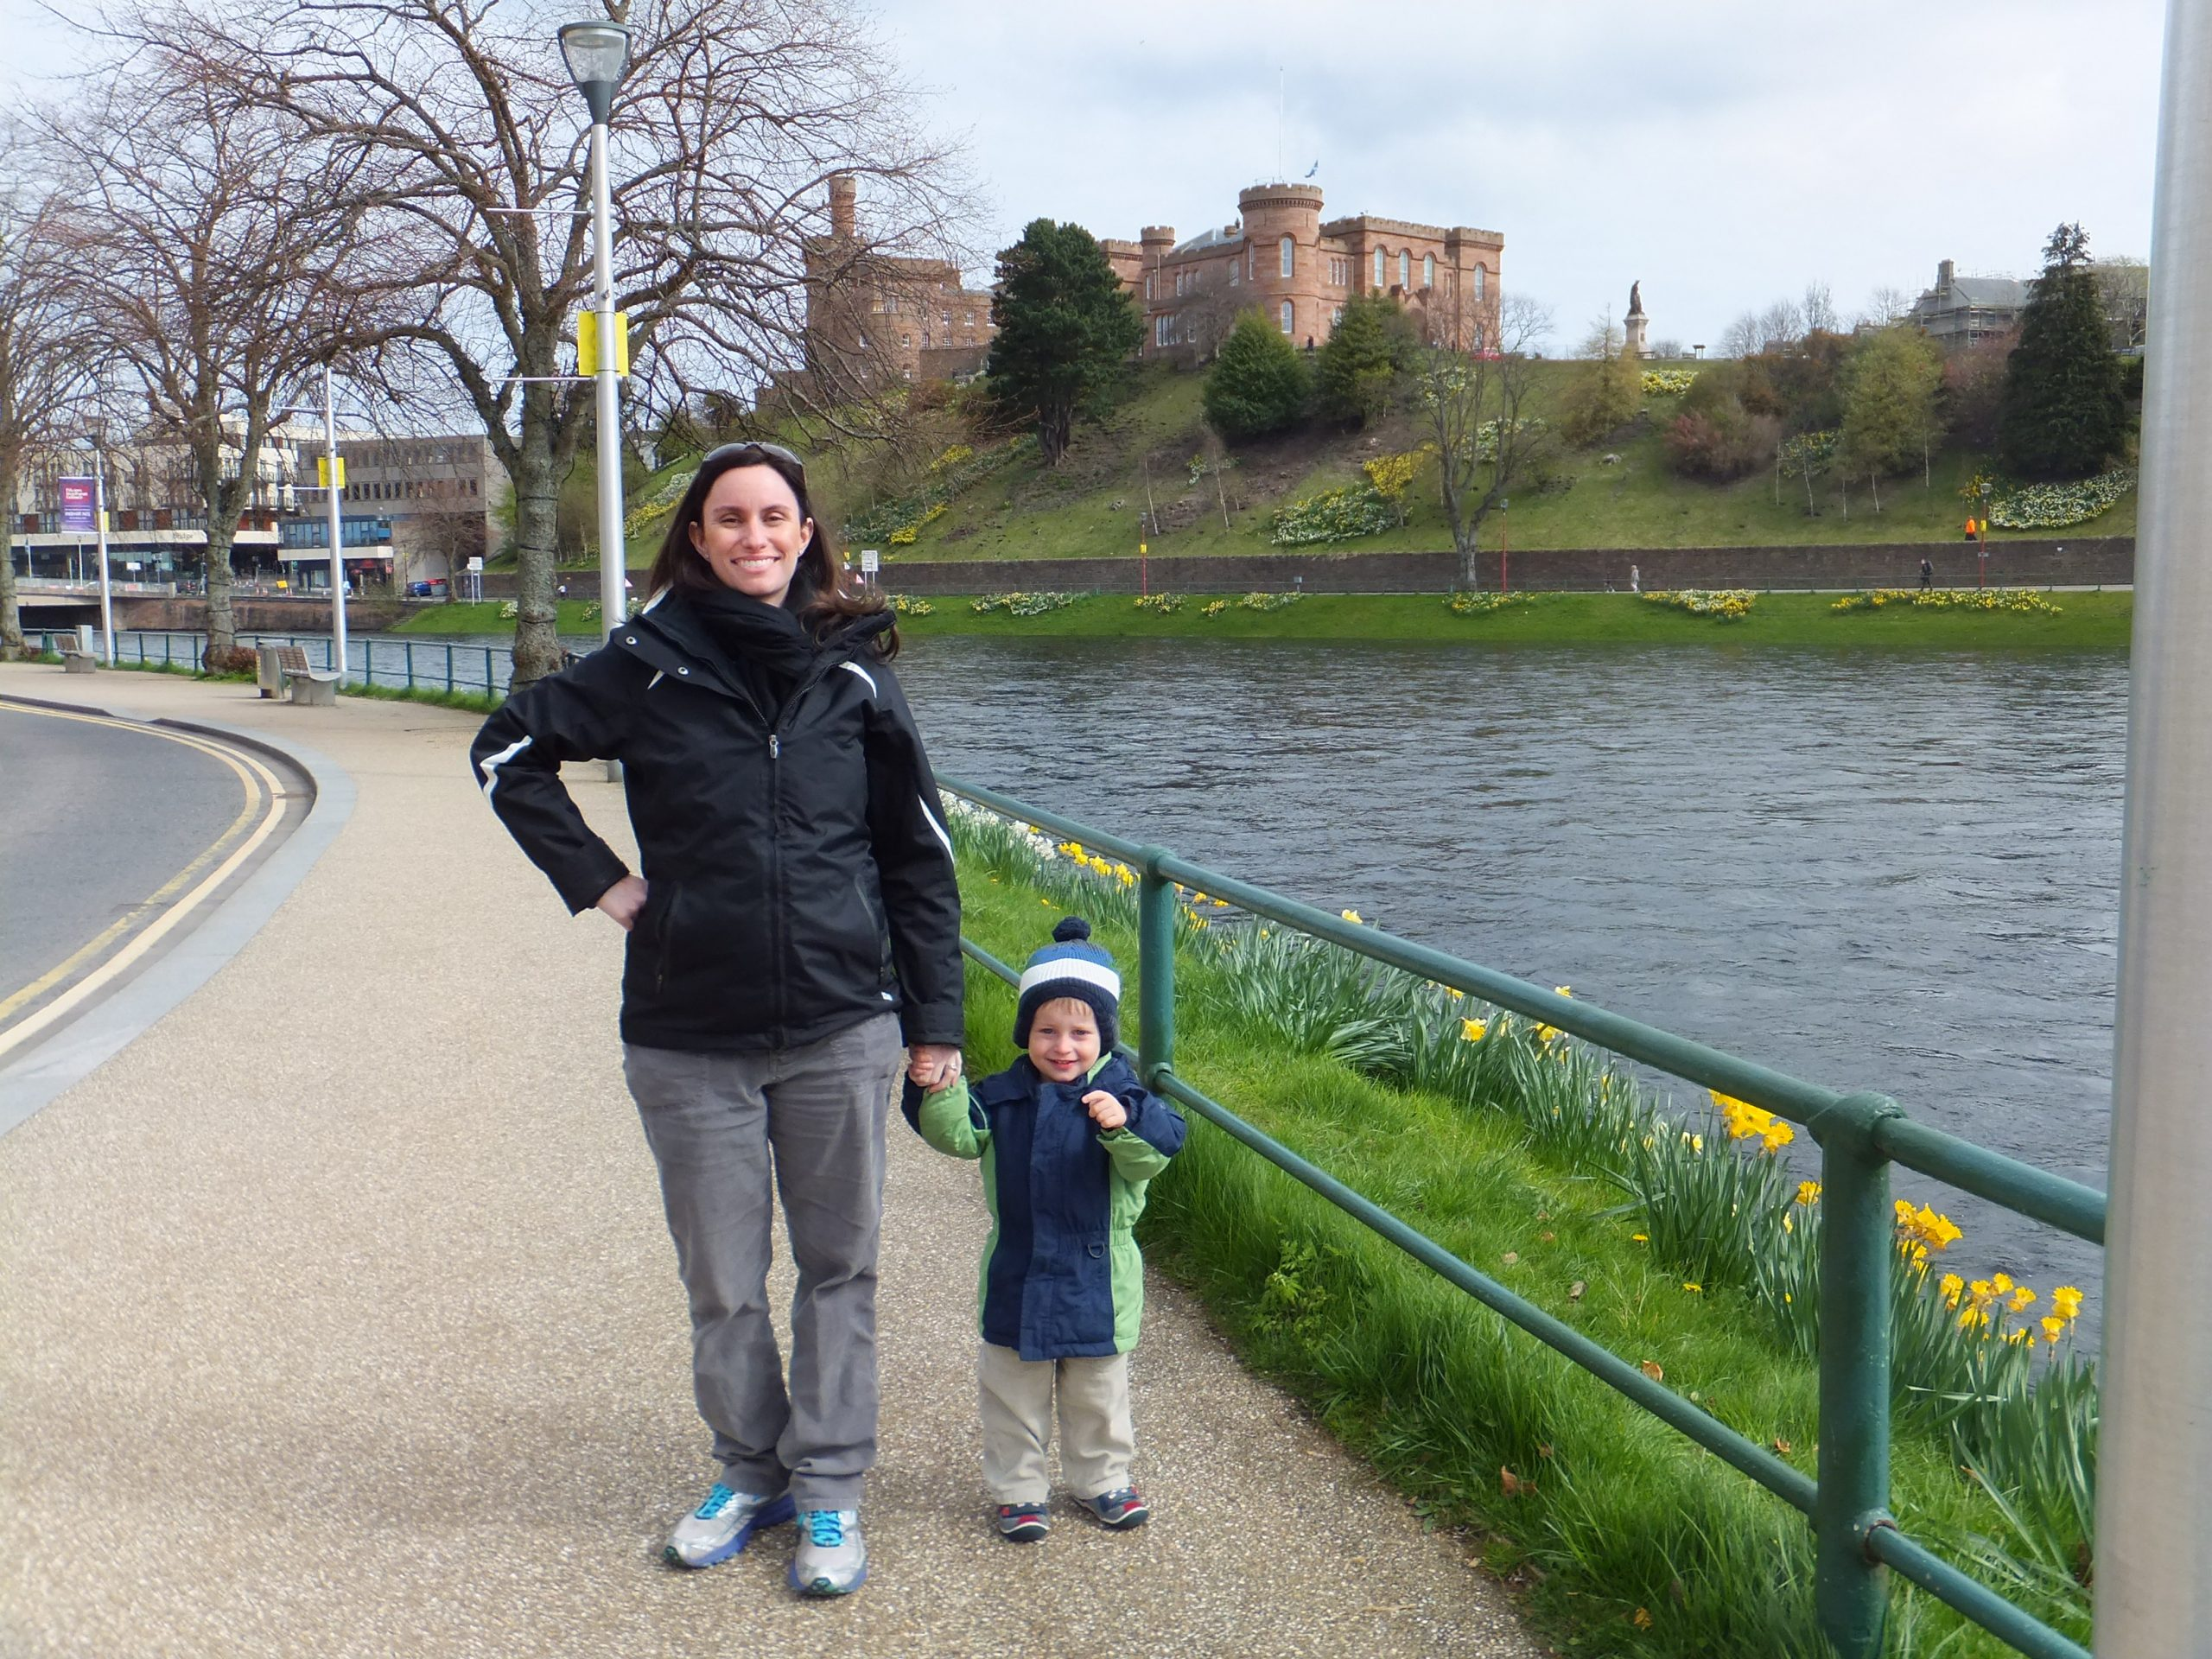 Mother and son in front of lake and castle in Scotland, April 2015